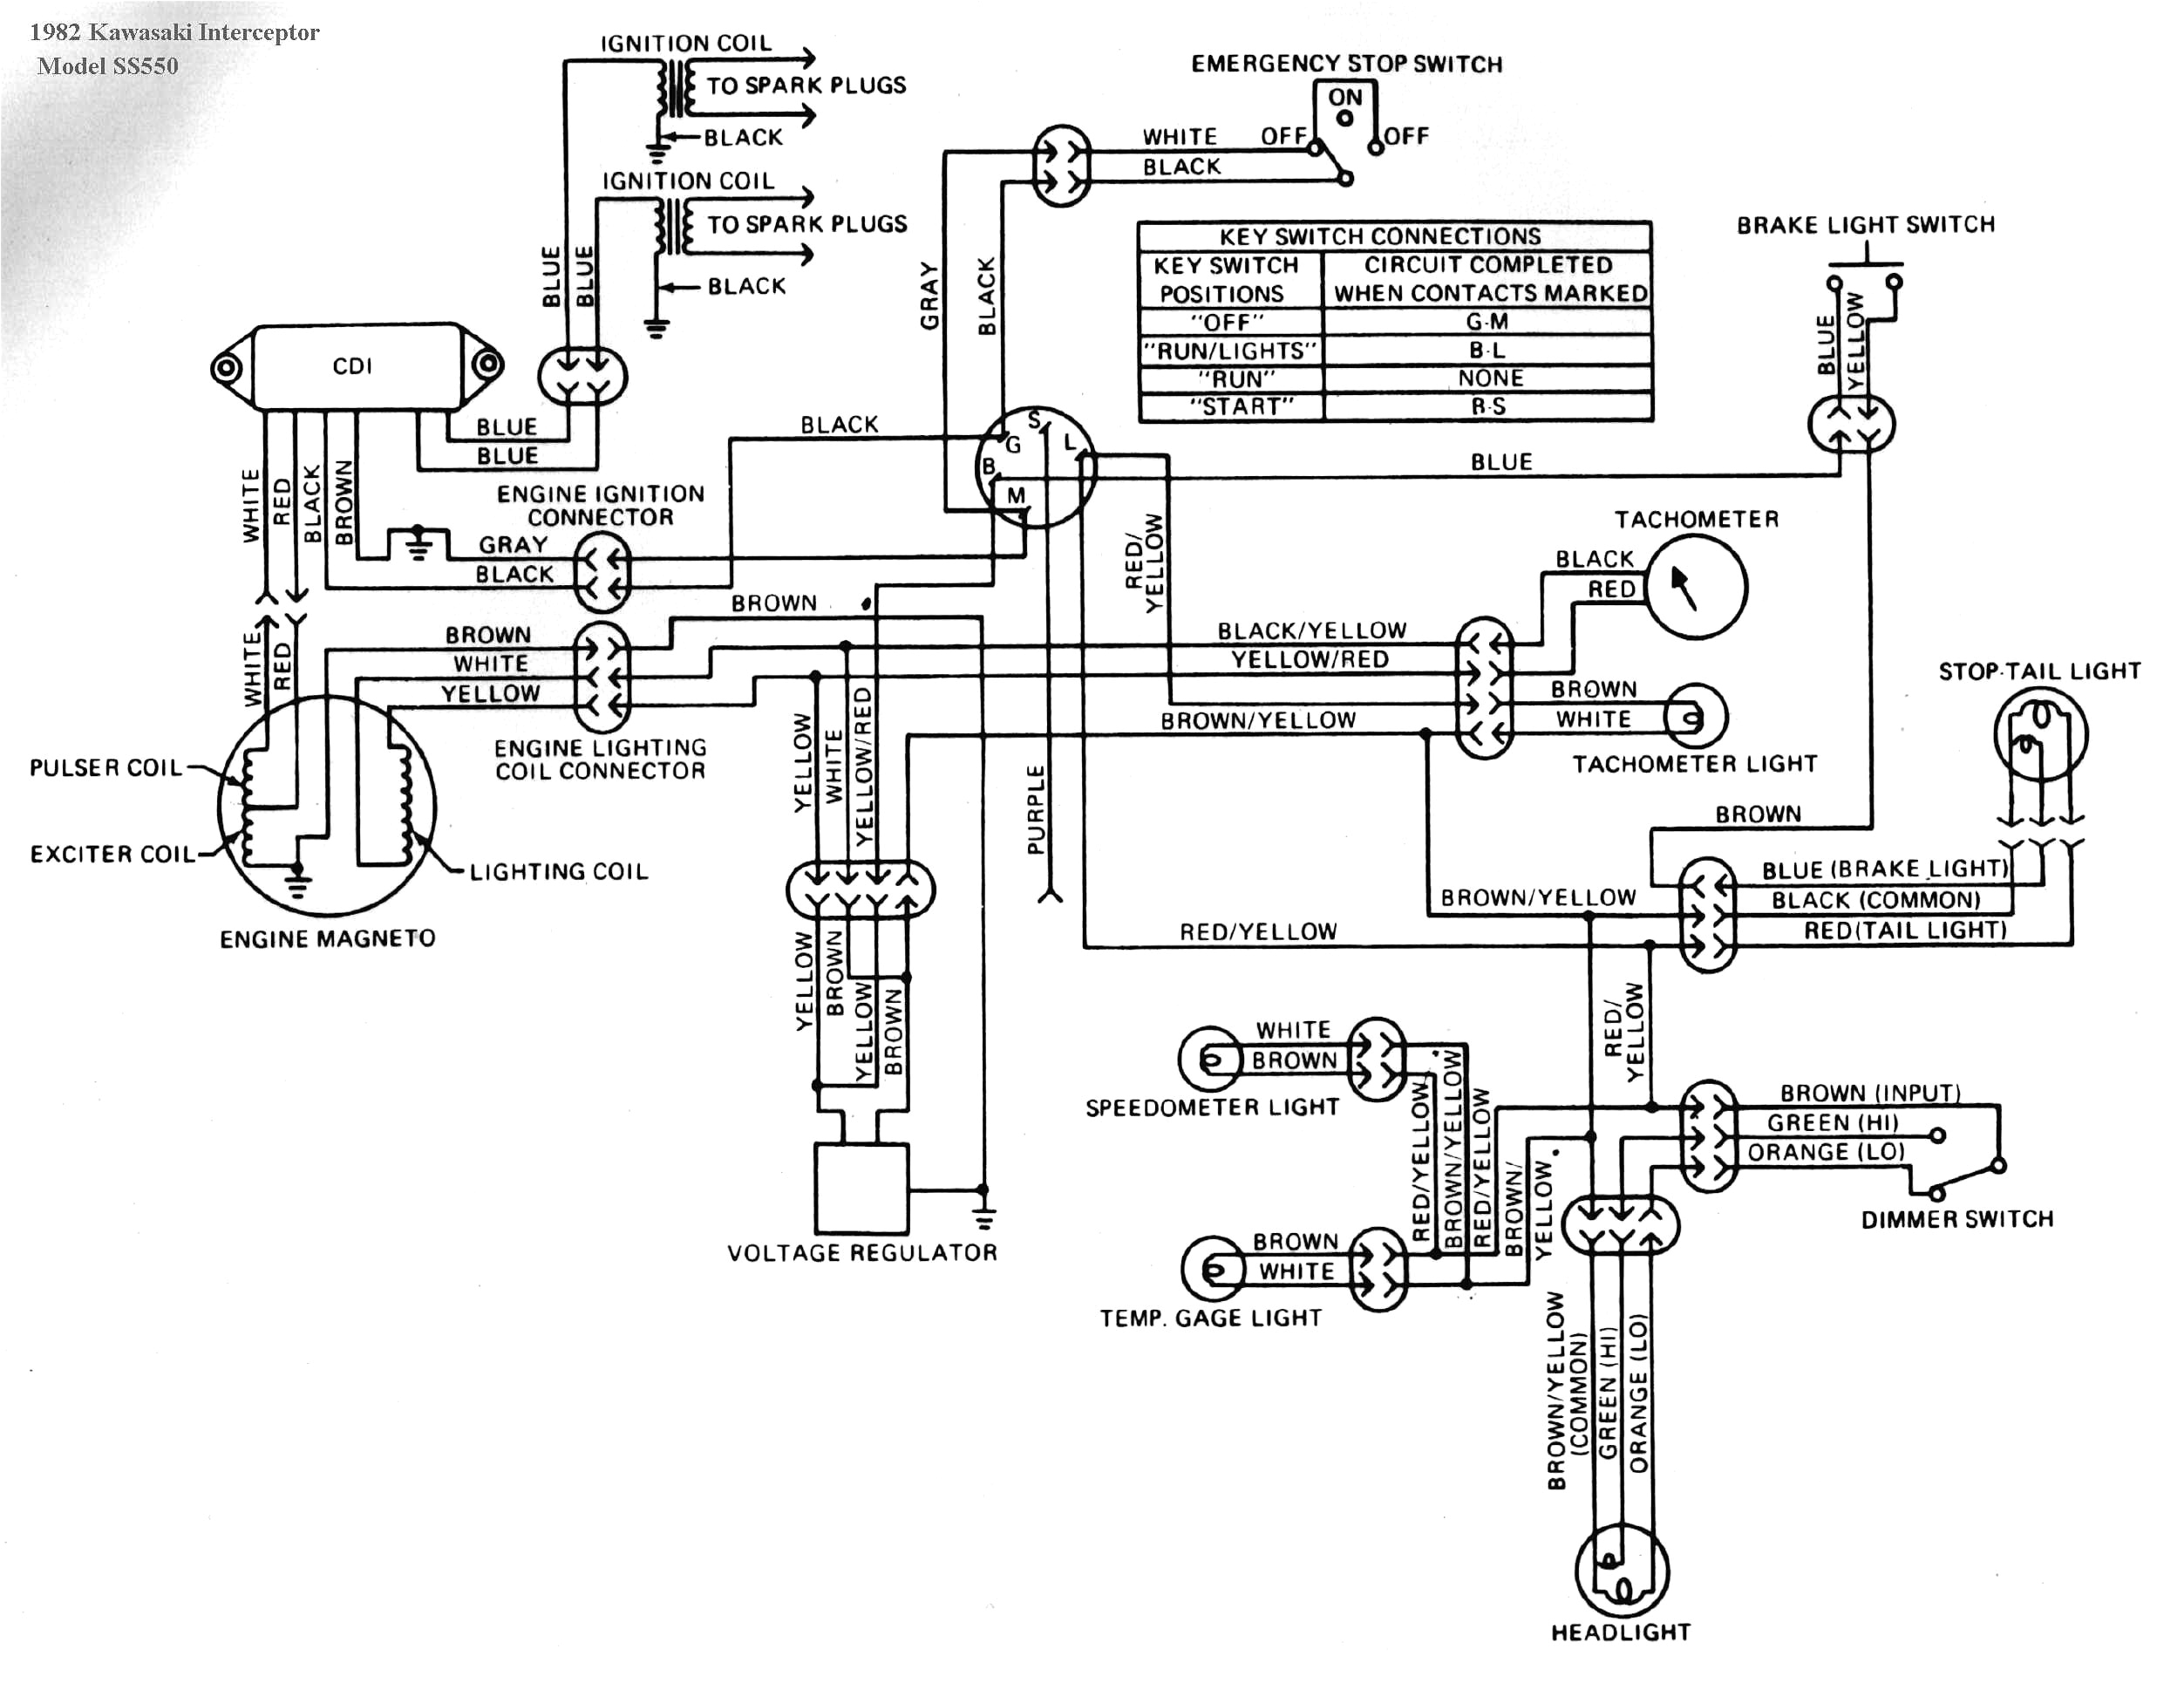 wiring diagram 2000 kawasaki 220 atv wiring diagrams bib kawasaki bayou 220 wiring harness free download diagram